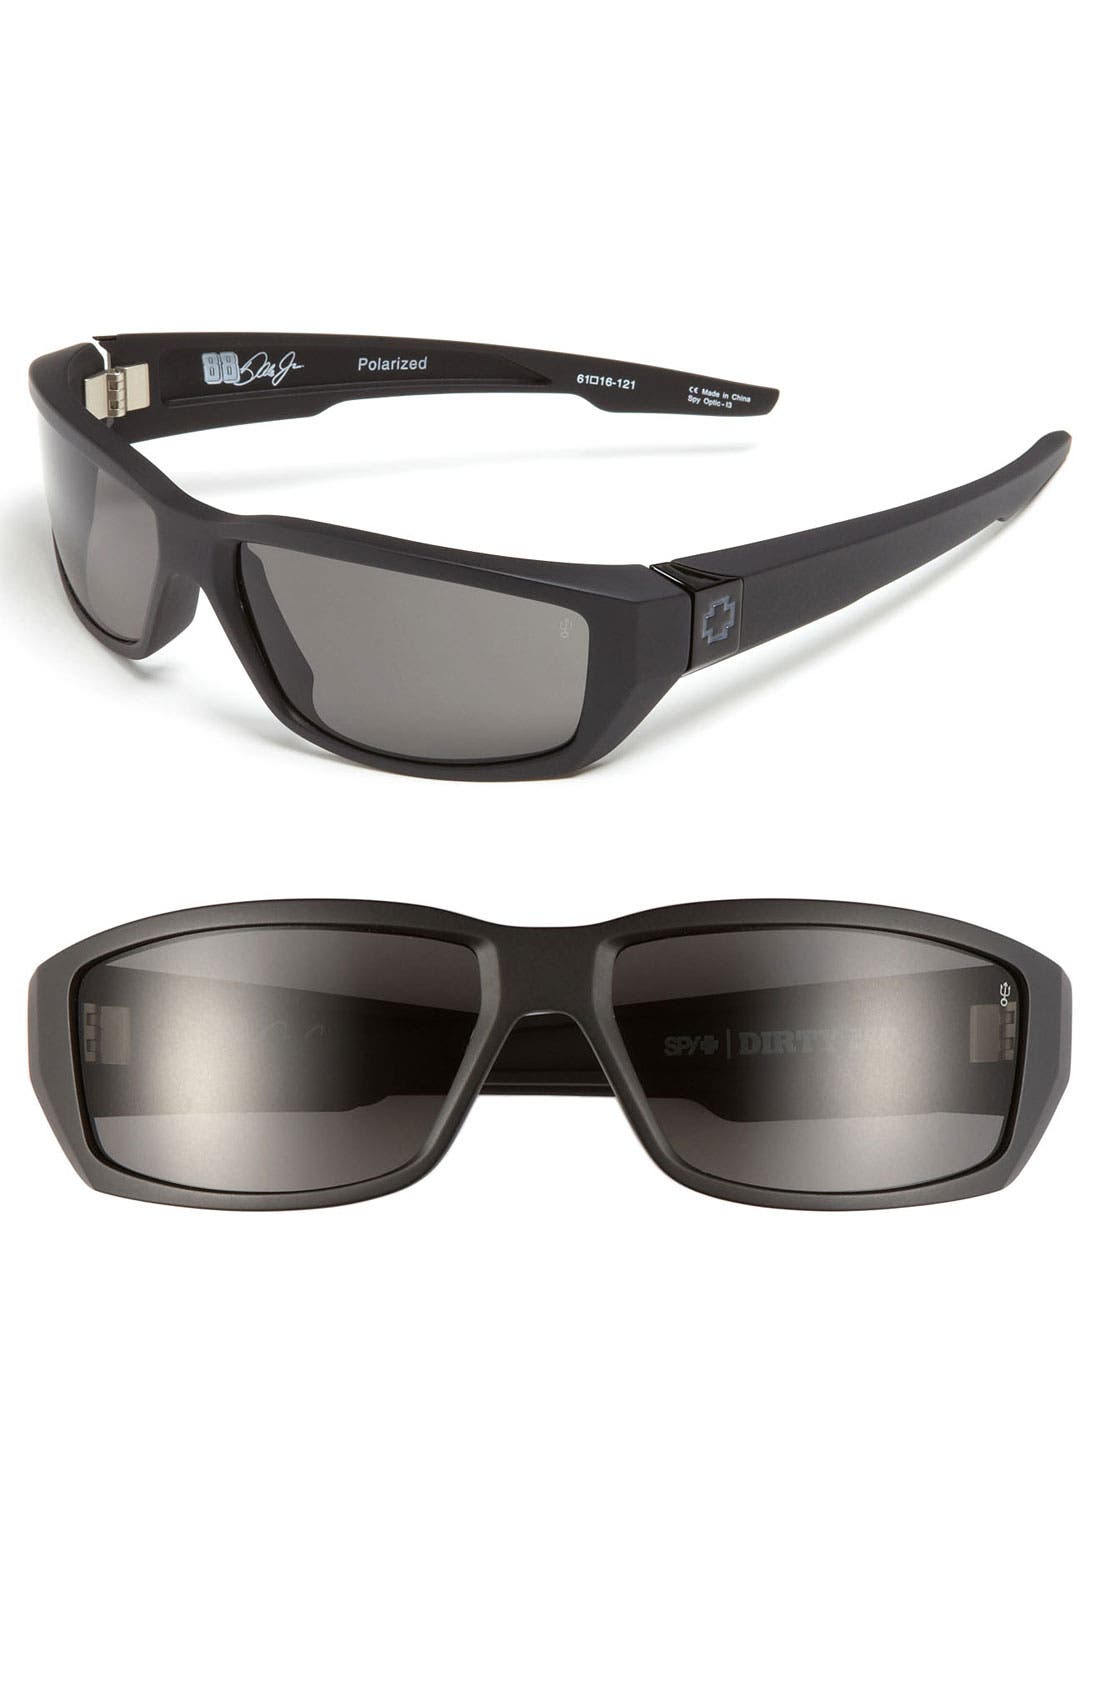 Alternate Image 1 Selected - SPY Optic 'Dale Earnhardt Jr. - Dirty Mo' 59mm Polarized Sunglasses